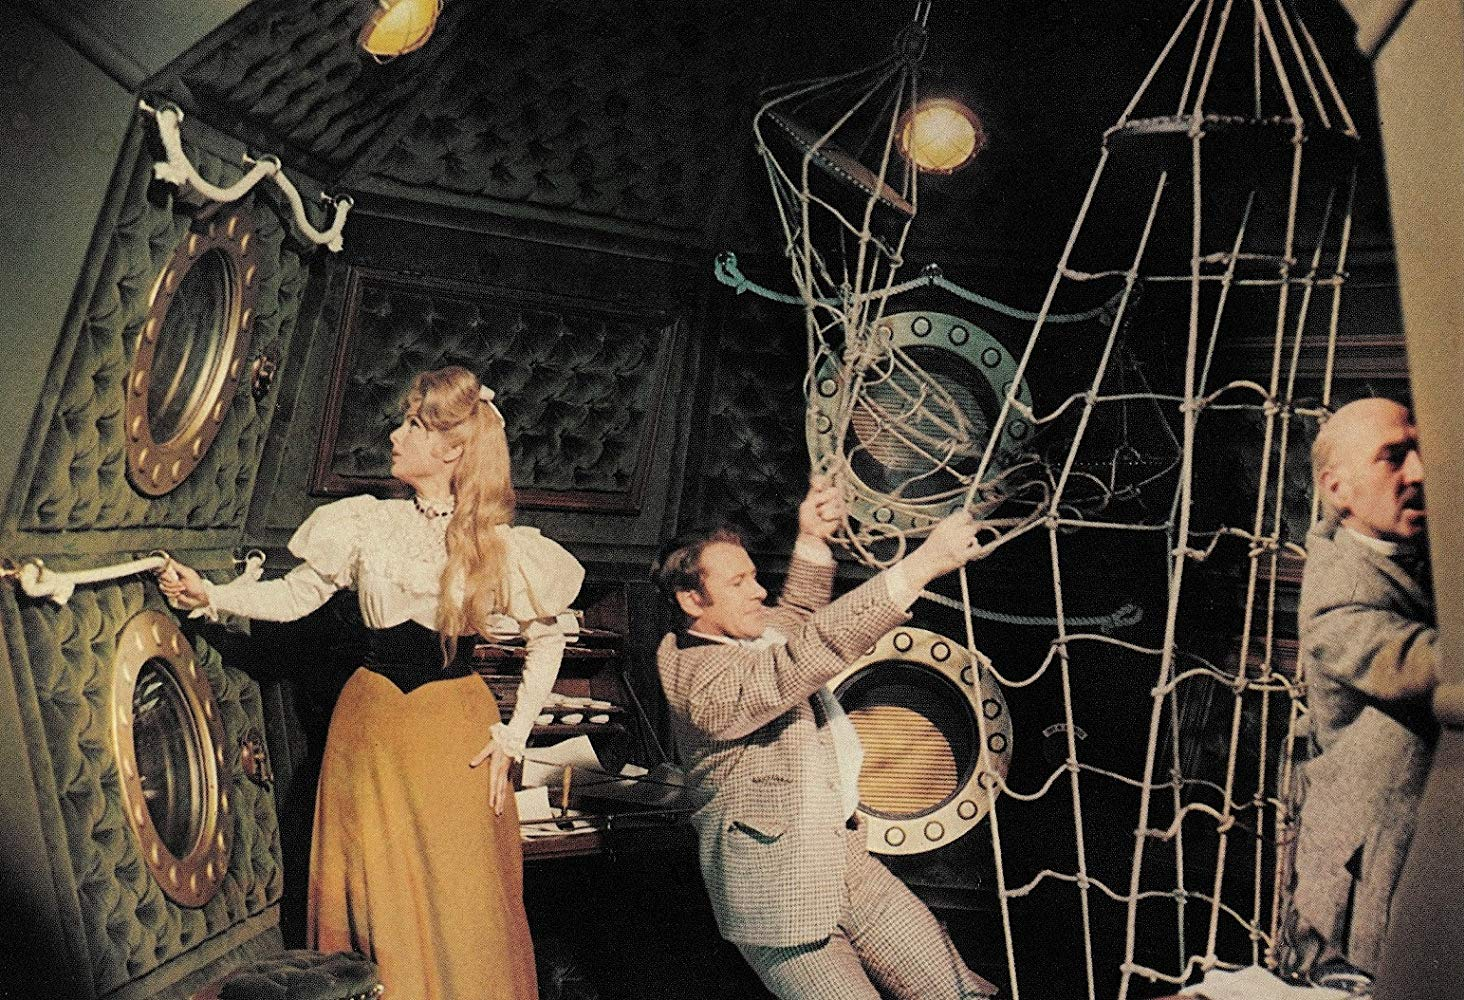 (l to r) Martha Hyer, Edward Judd and Lionel Jeffries launch in the Cavorite ship in The First Men in the Moon (1964)